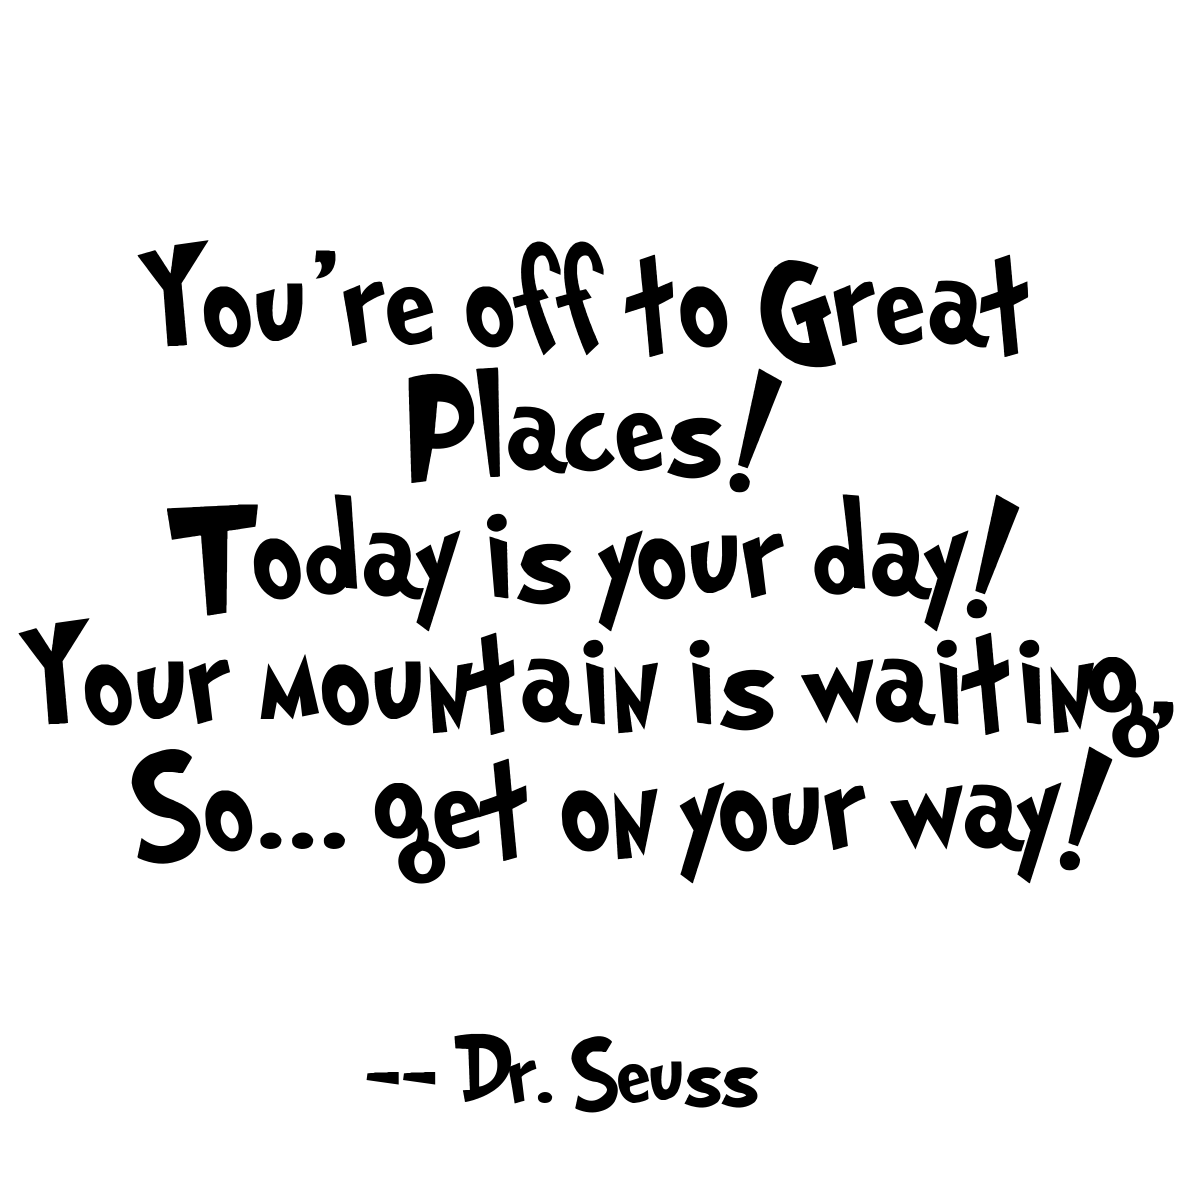 40 Inspirational Dr Suess Quotes Dr Seuss Quotes Insightful Quotes Inspirational Dr Seuss Quotes